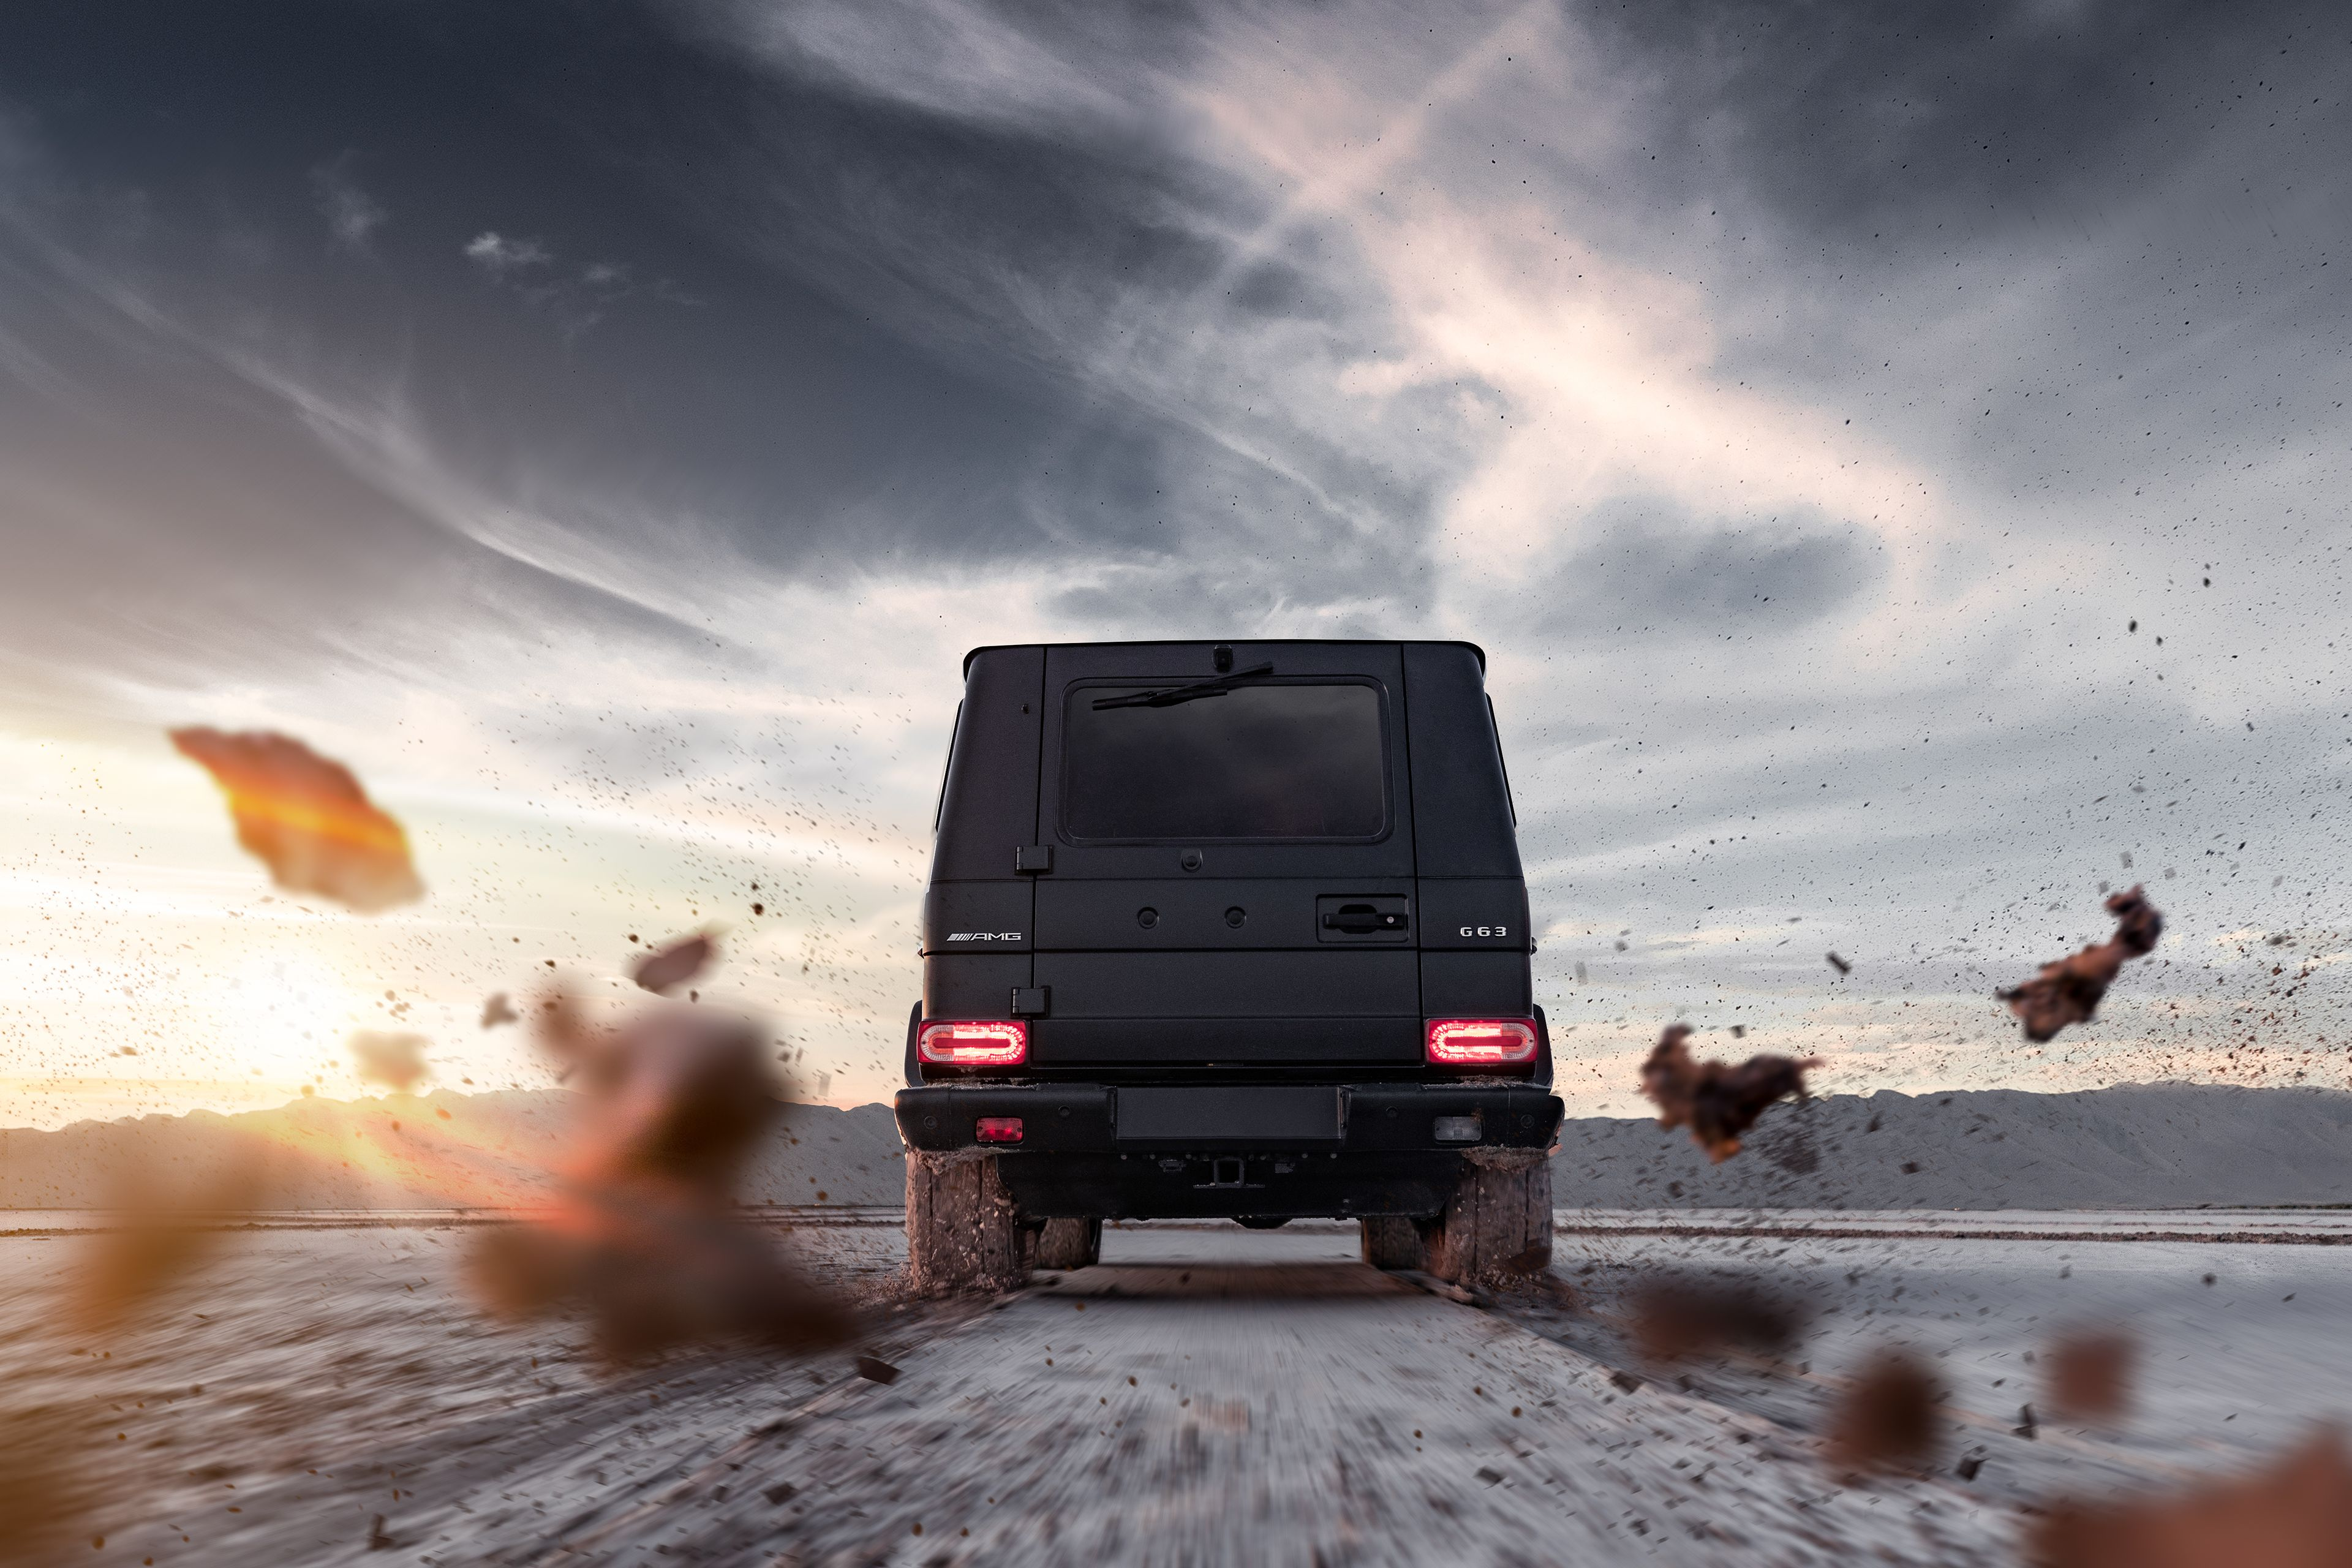 Mercedes G63 Amg Wallpapers Top Free Mercedes G63 Amg Backgrounds Wallpaperaccess